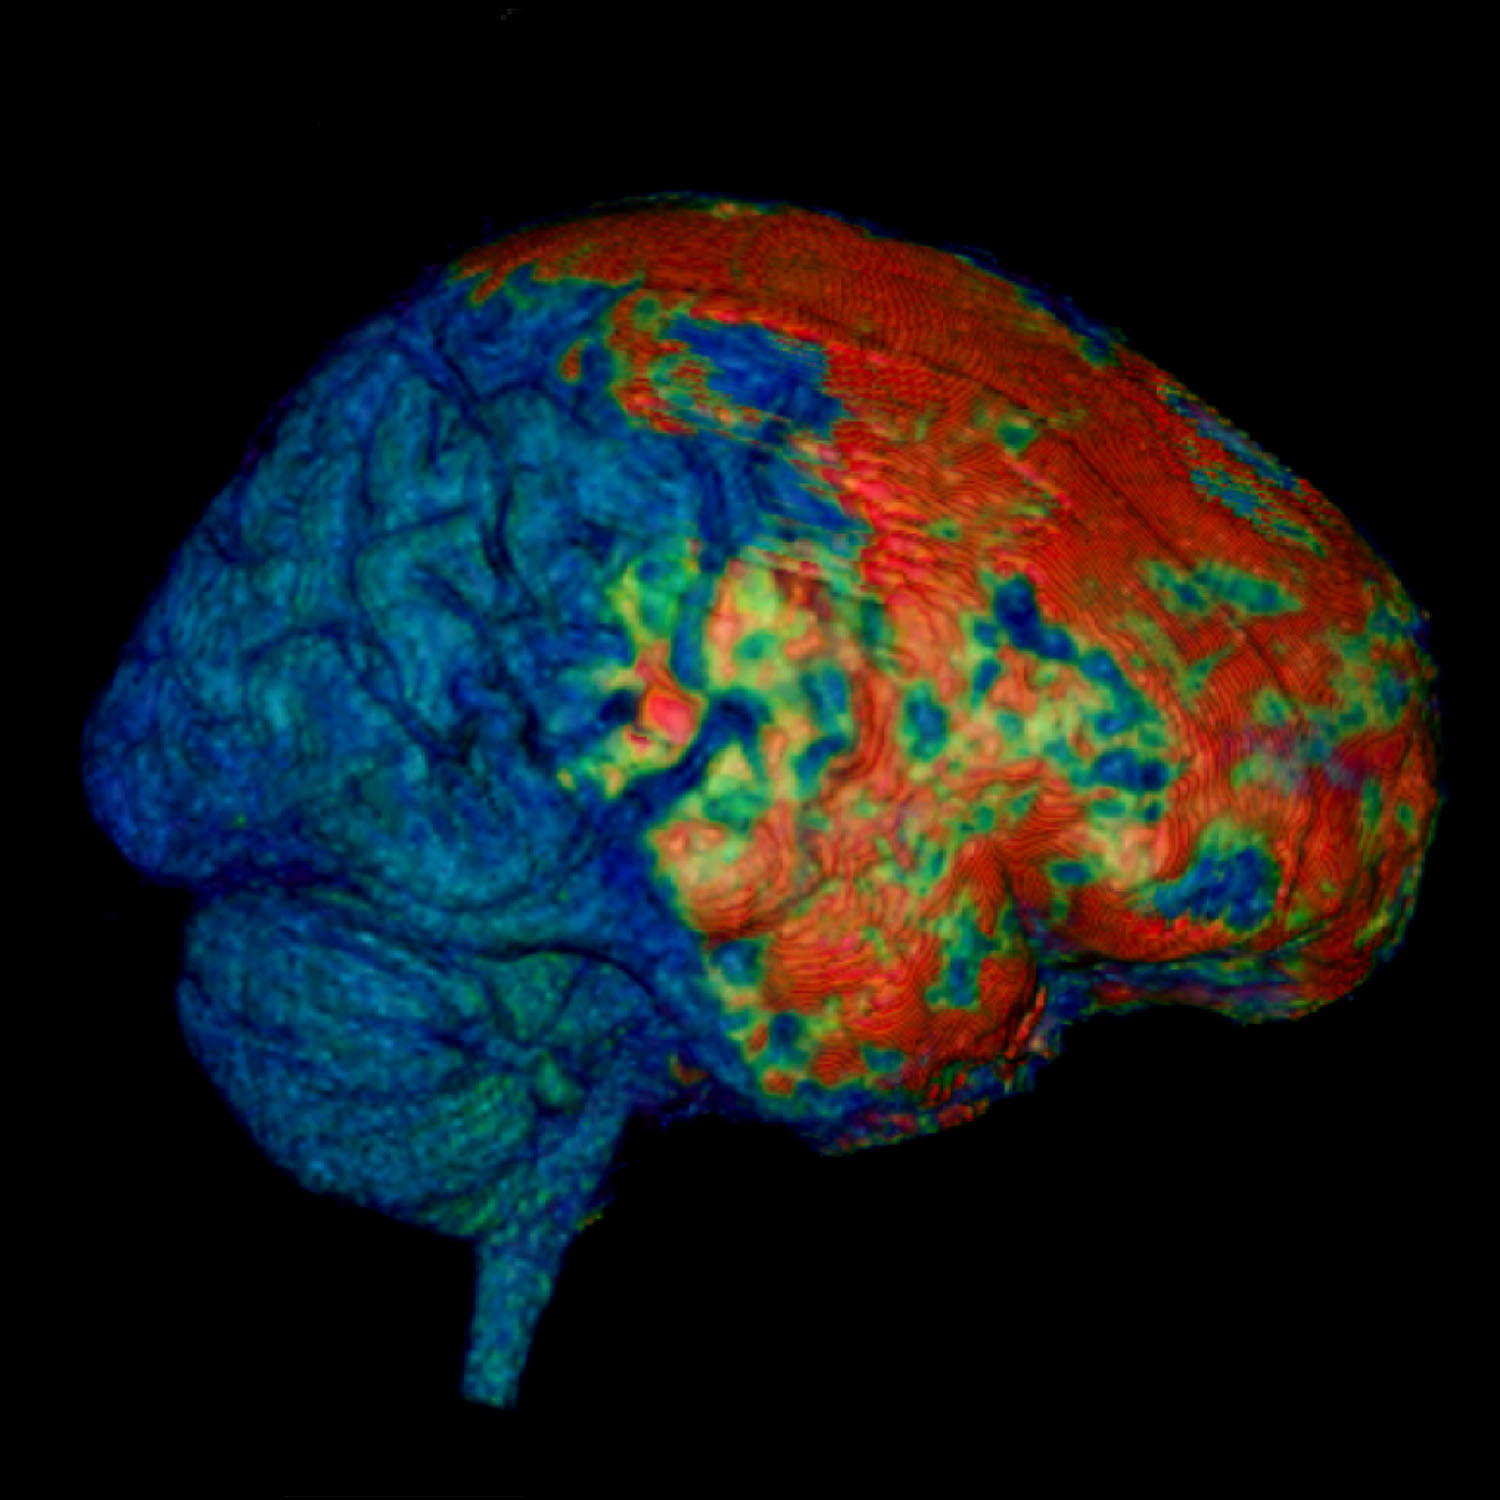 Researchers film early concussion damage describe brains response researchers film early concussion damage describe brains response to injury w video ccuart Choice Image